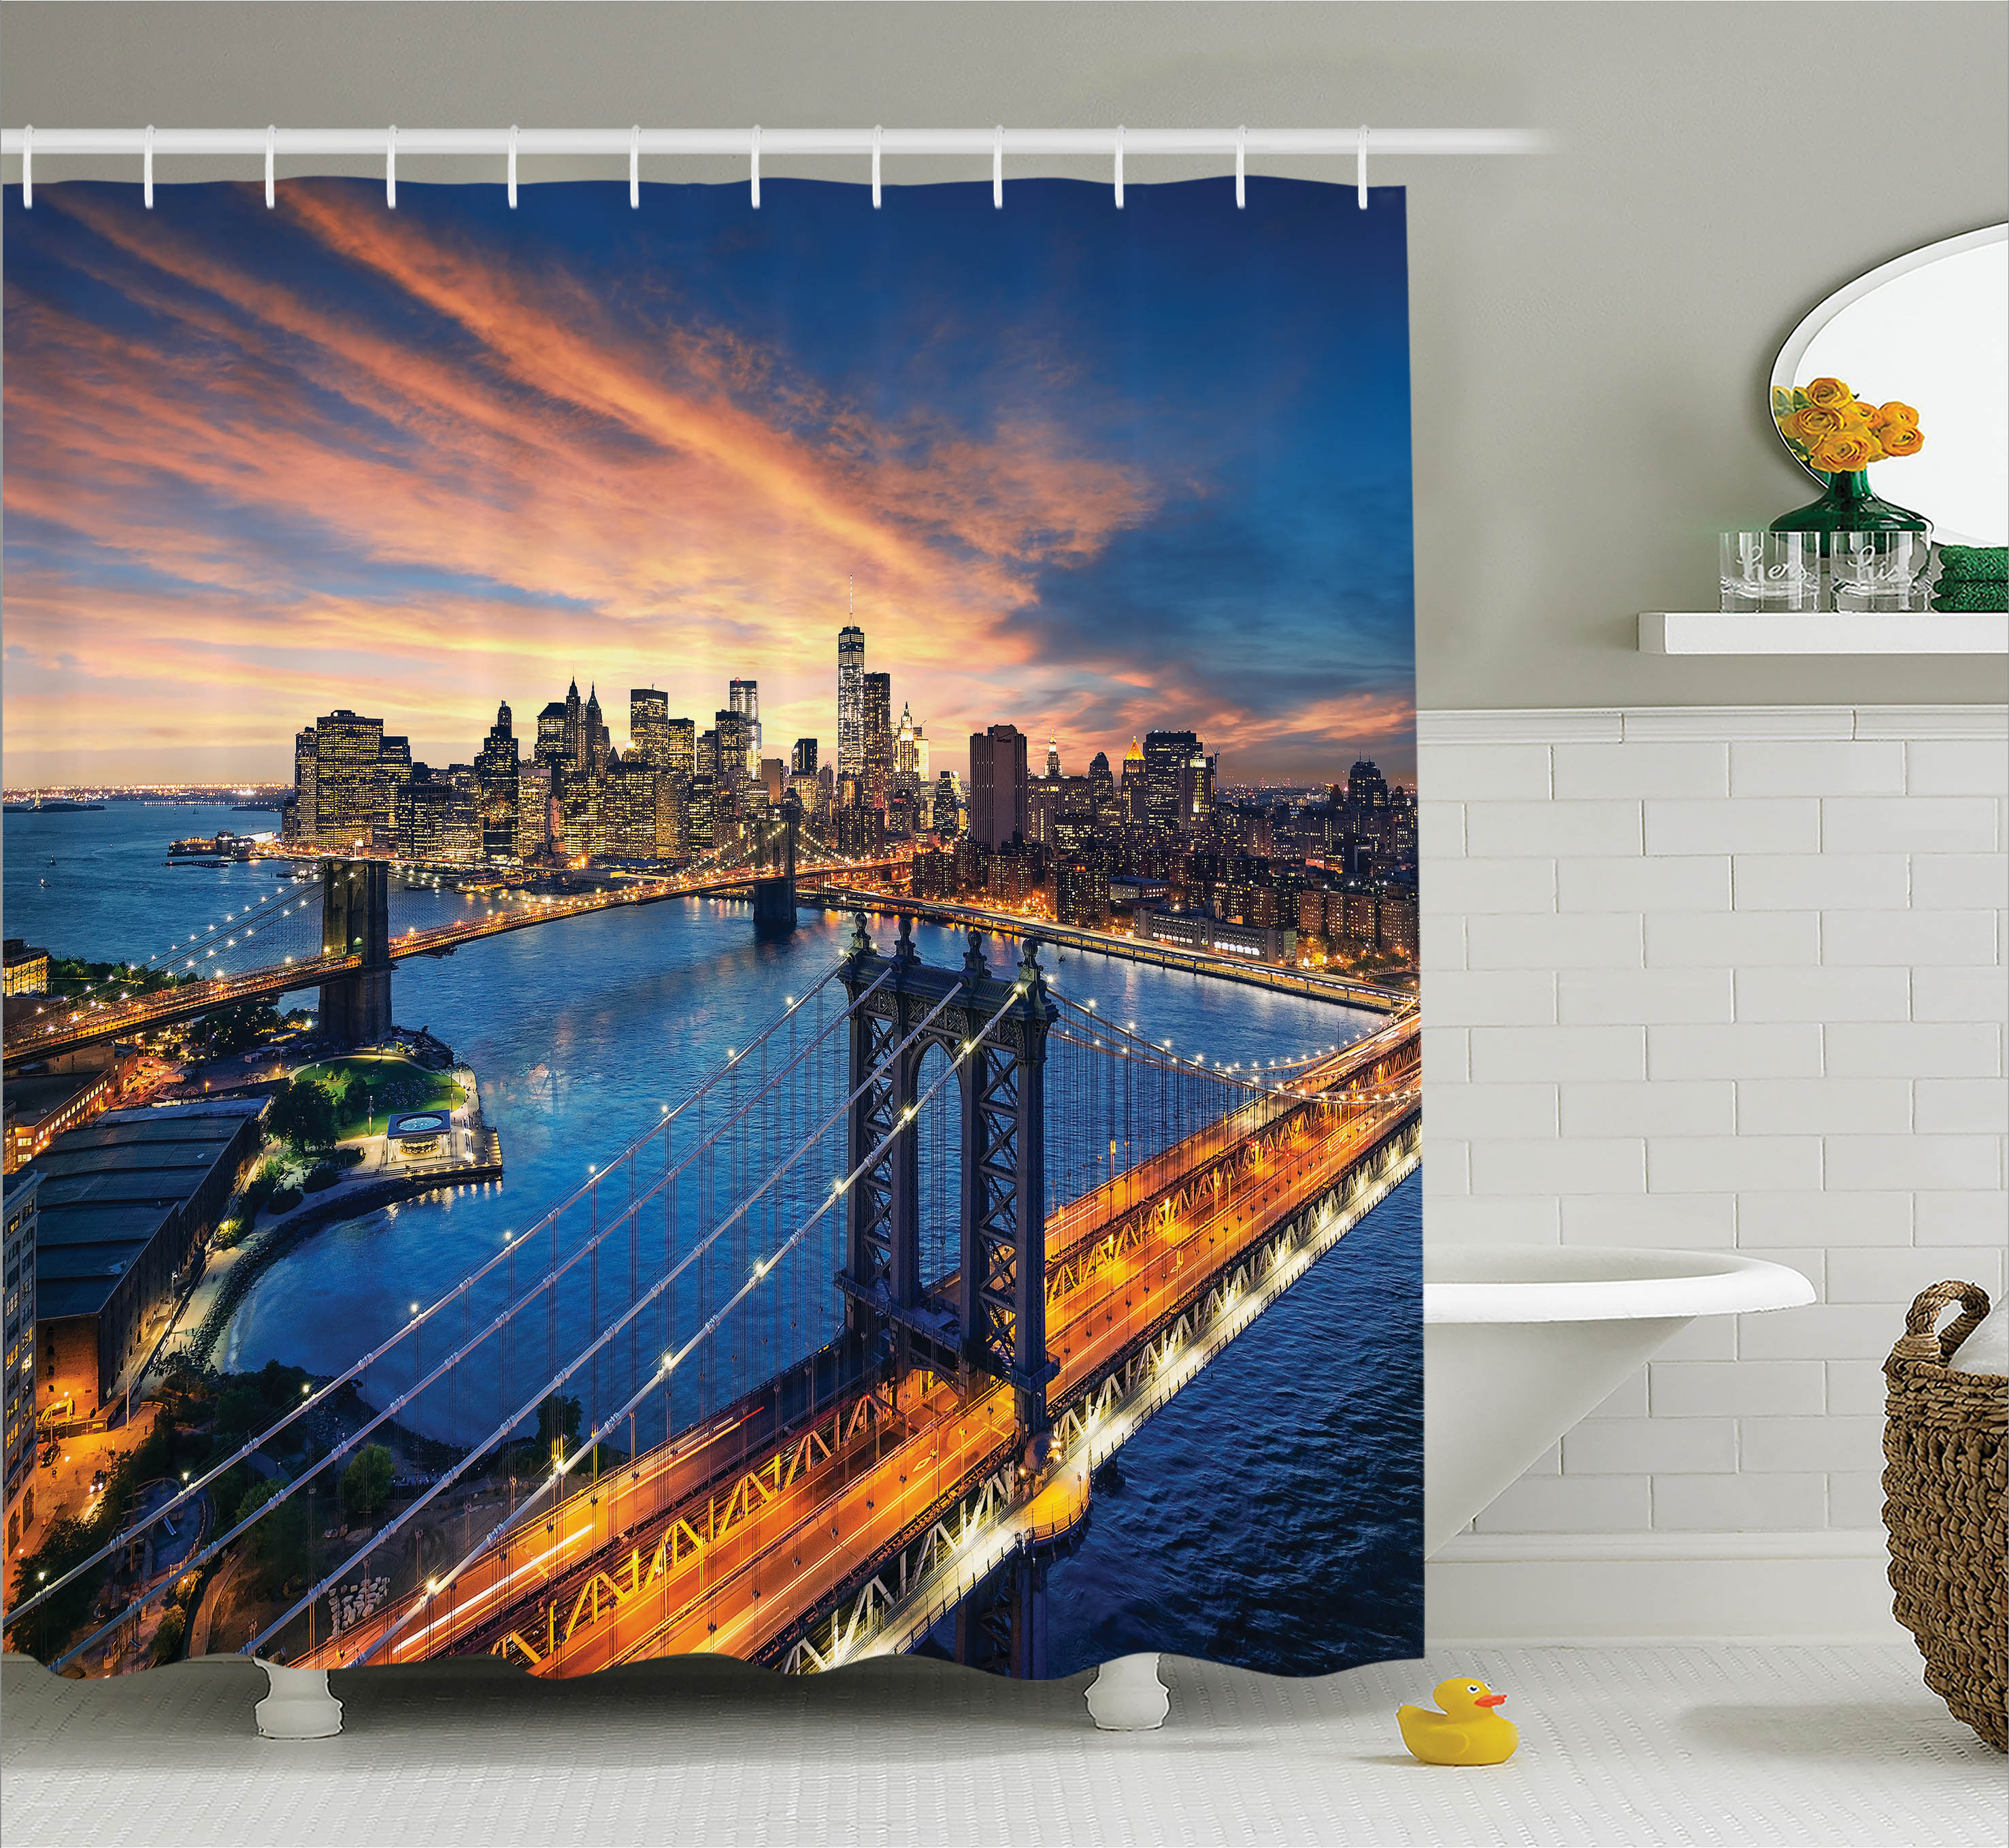 Apartment Decor Shower Curtain, American City Sunset Over Manhattan and Brooklyn Bridge Cityscape Print, Fabric Bathroom Set with Hooks, 69W X 75L Inches Long, Gold Navy, by Ambesonne